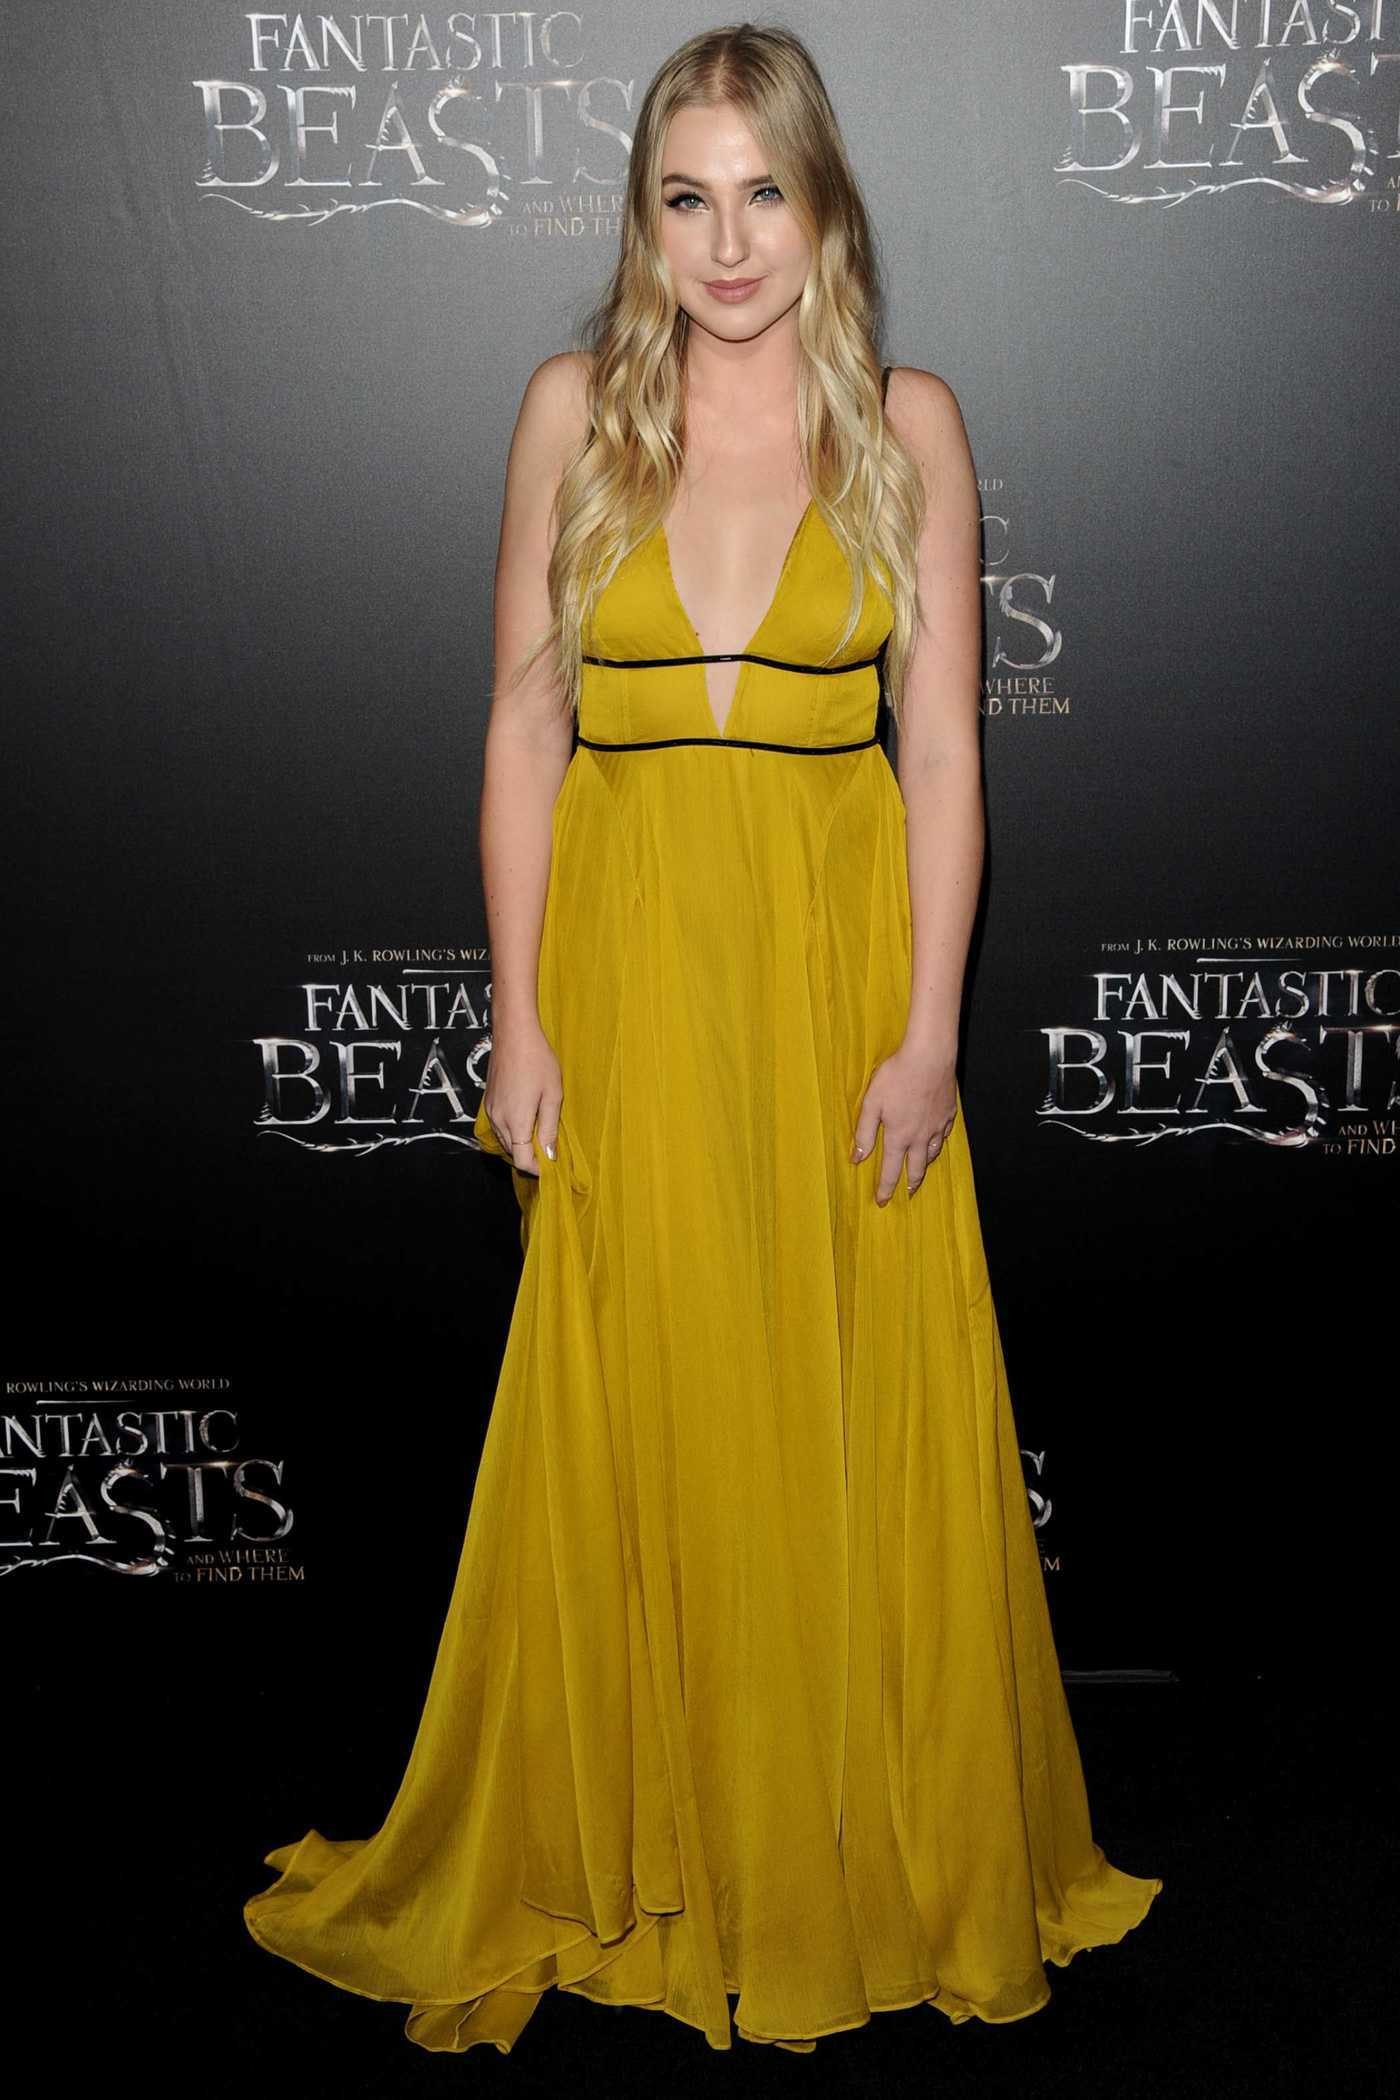 Veronica Dunne at the Fantastic Beasts and Where to Find Them Premiere in New York 11/10/2016